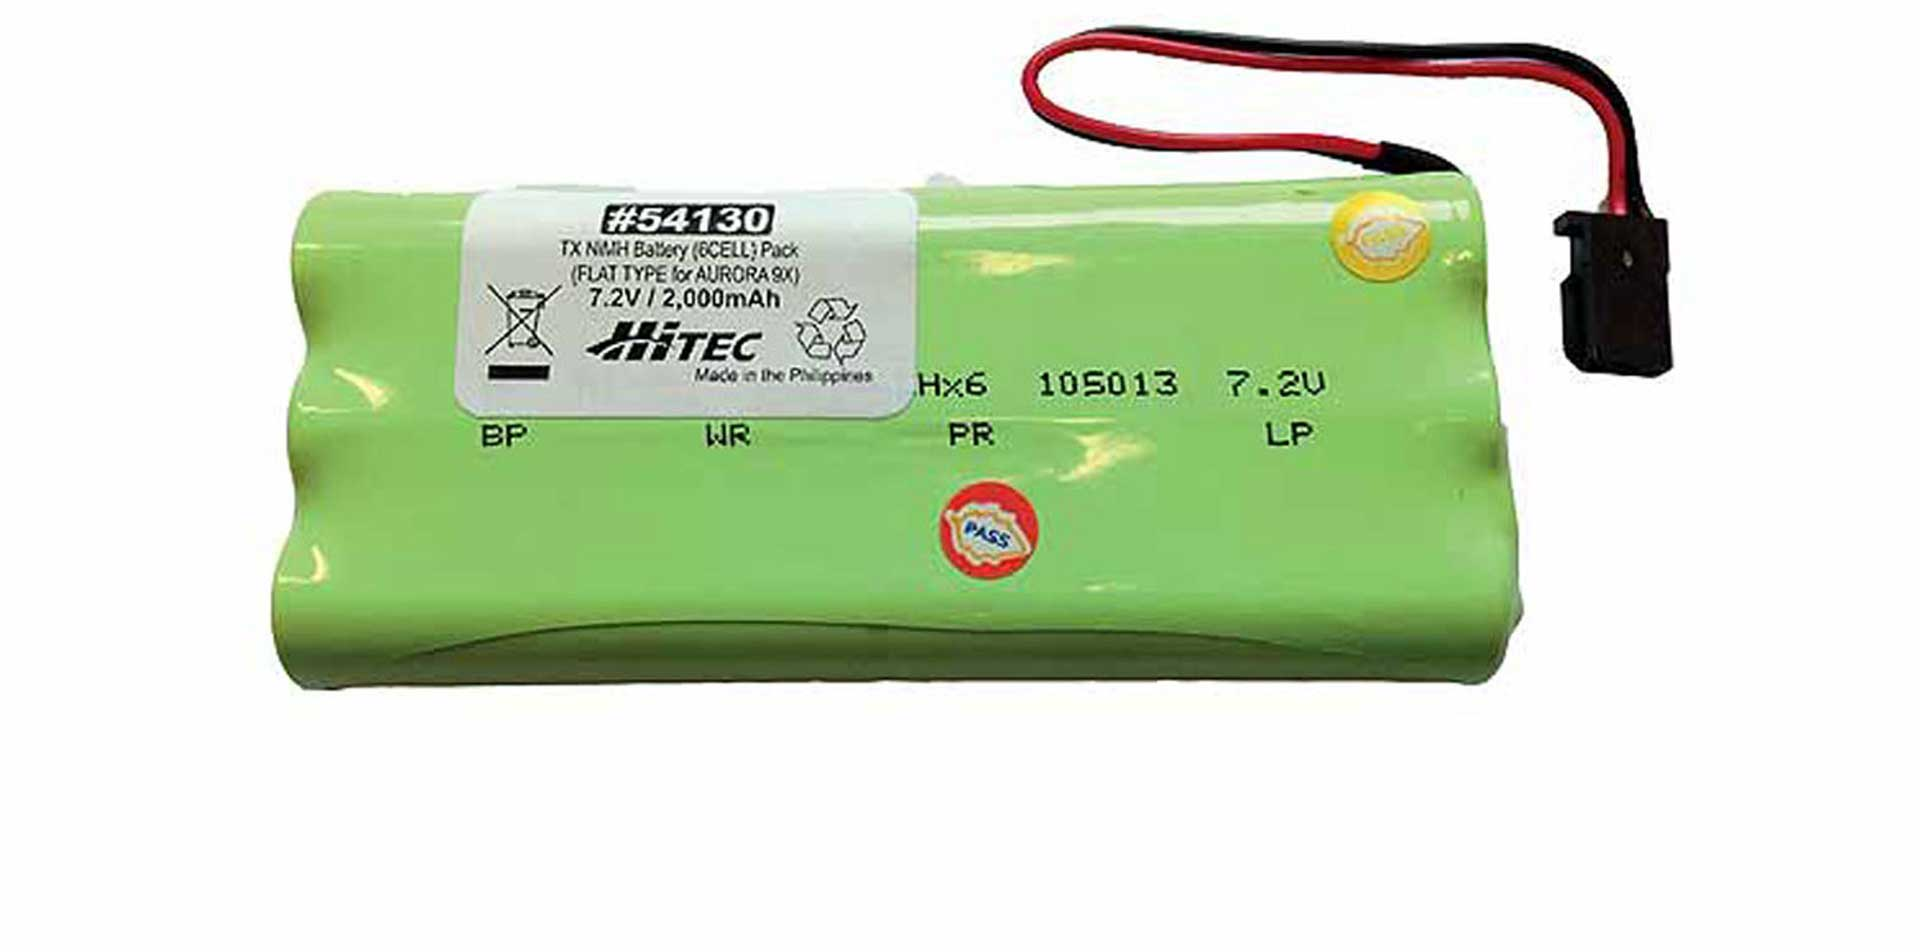 HITEC TRANSMITTER BATTERY AURORA 9 2000MAH 6 CELLS NIMH UNI-CONNECTOR